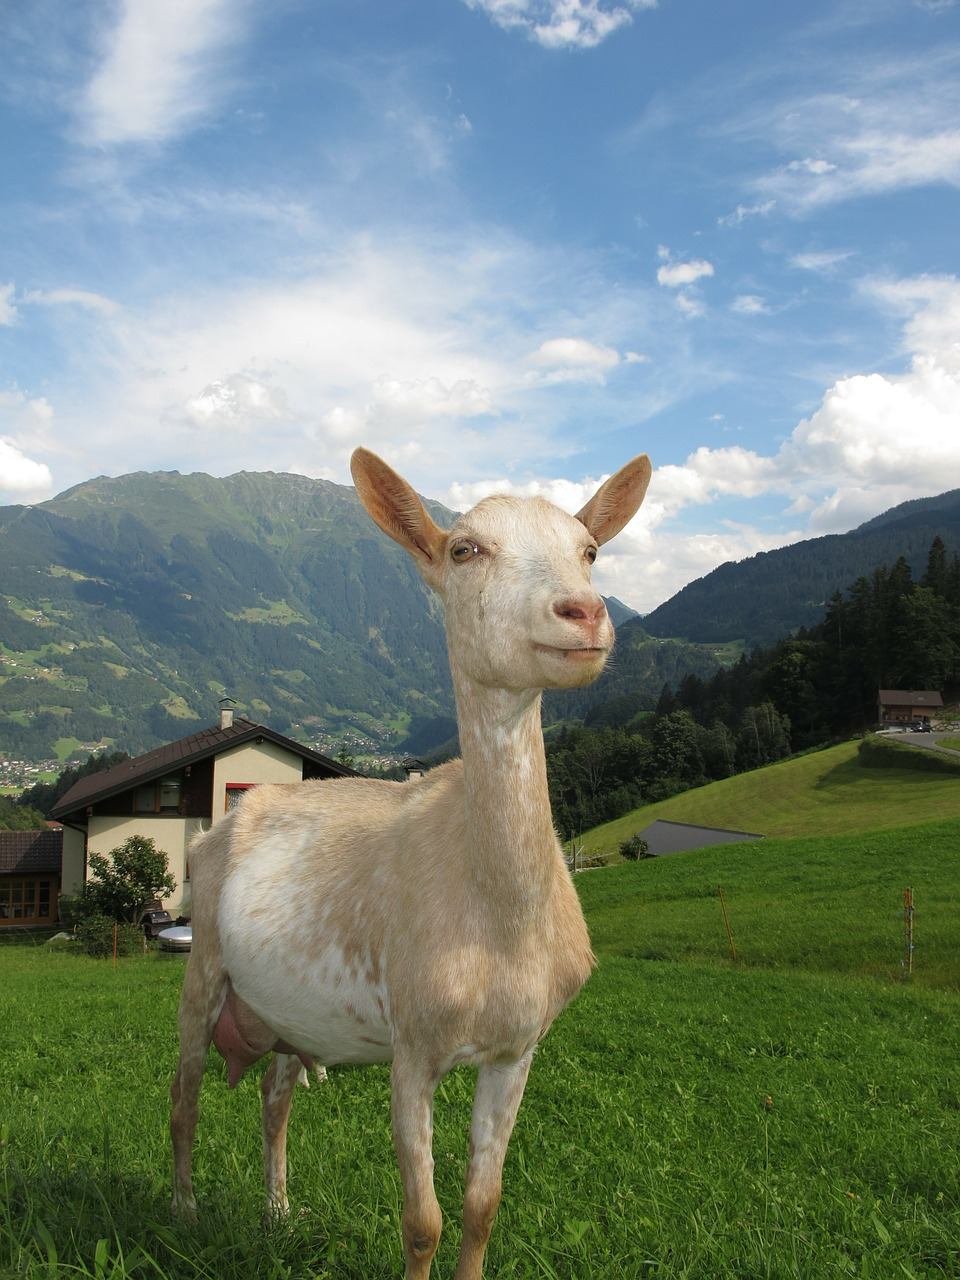 goat in austria austria goat free photo